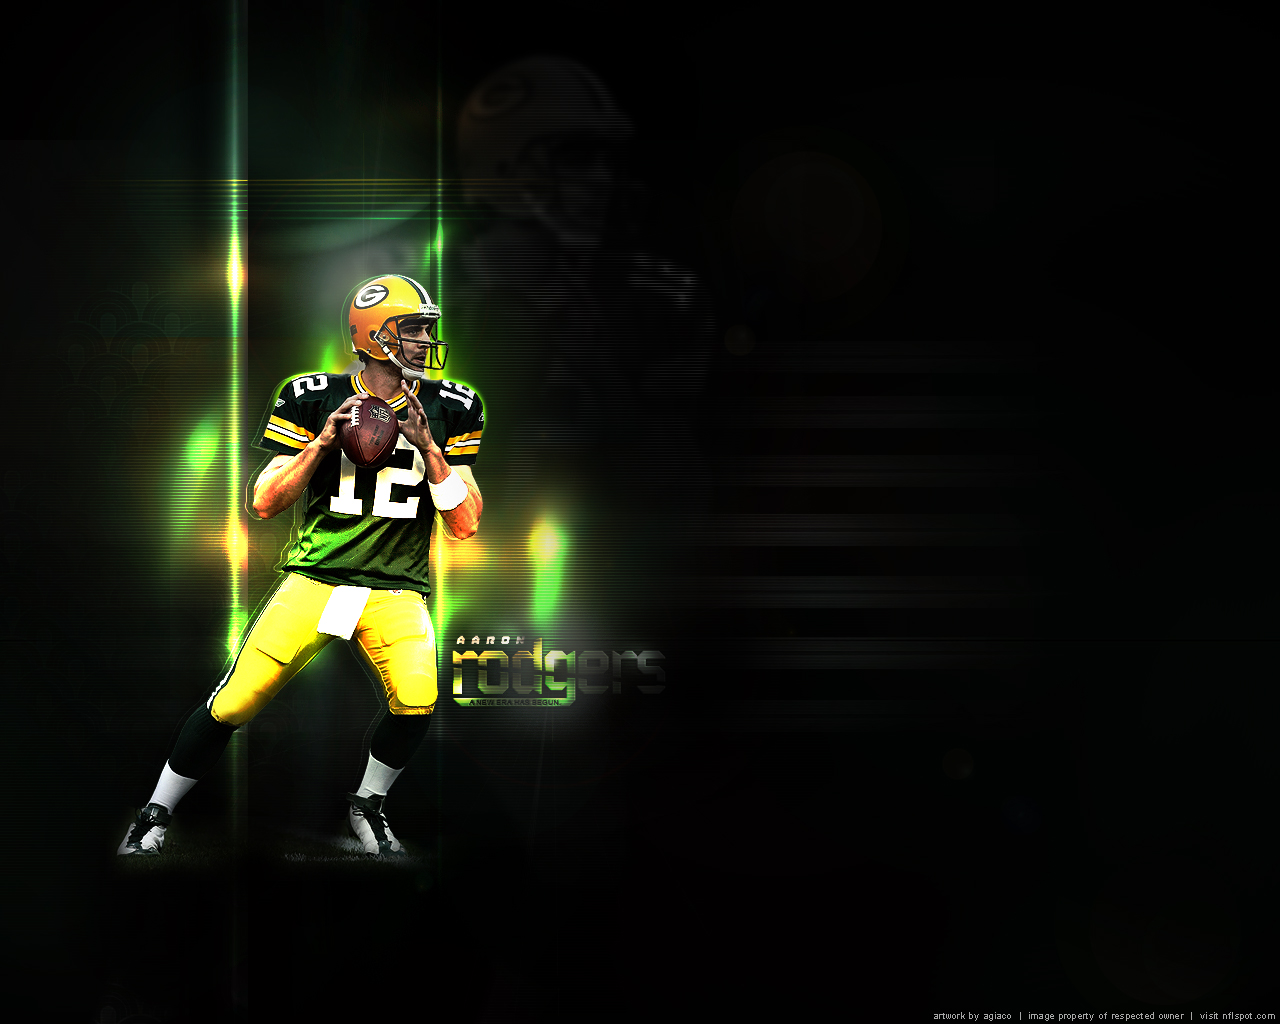 Green Bay Packers Team Wallpaper Images Pictures   Becuo 1280x1024